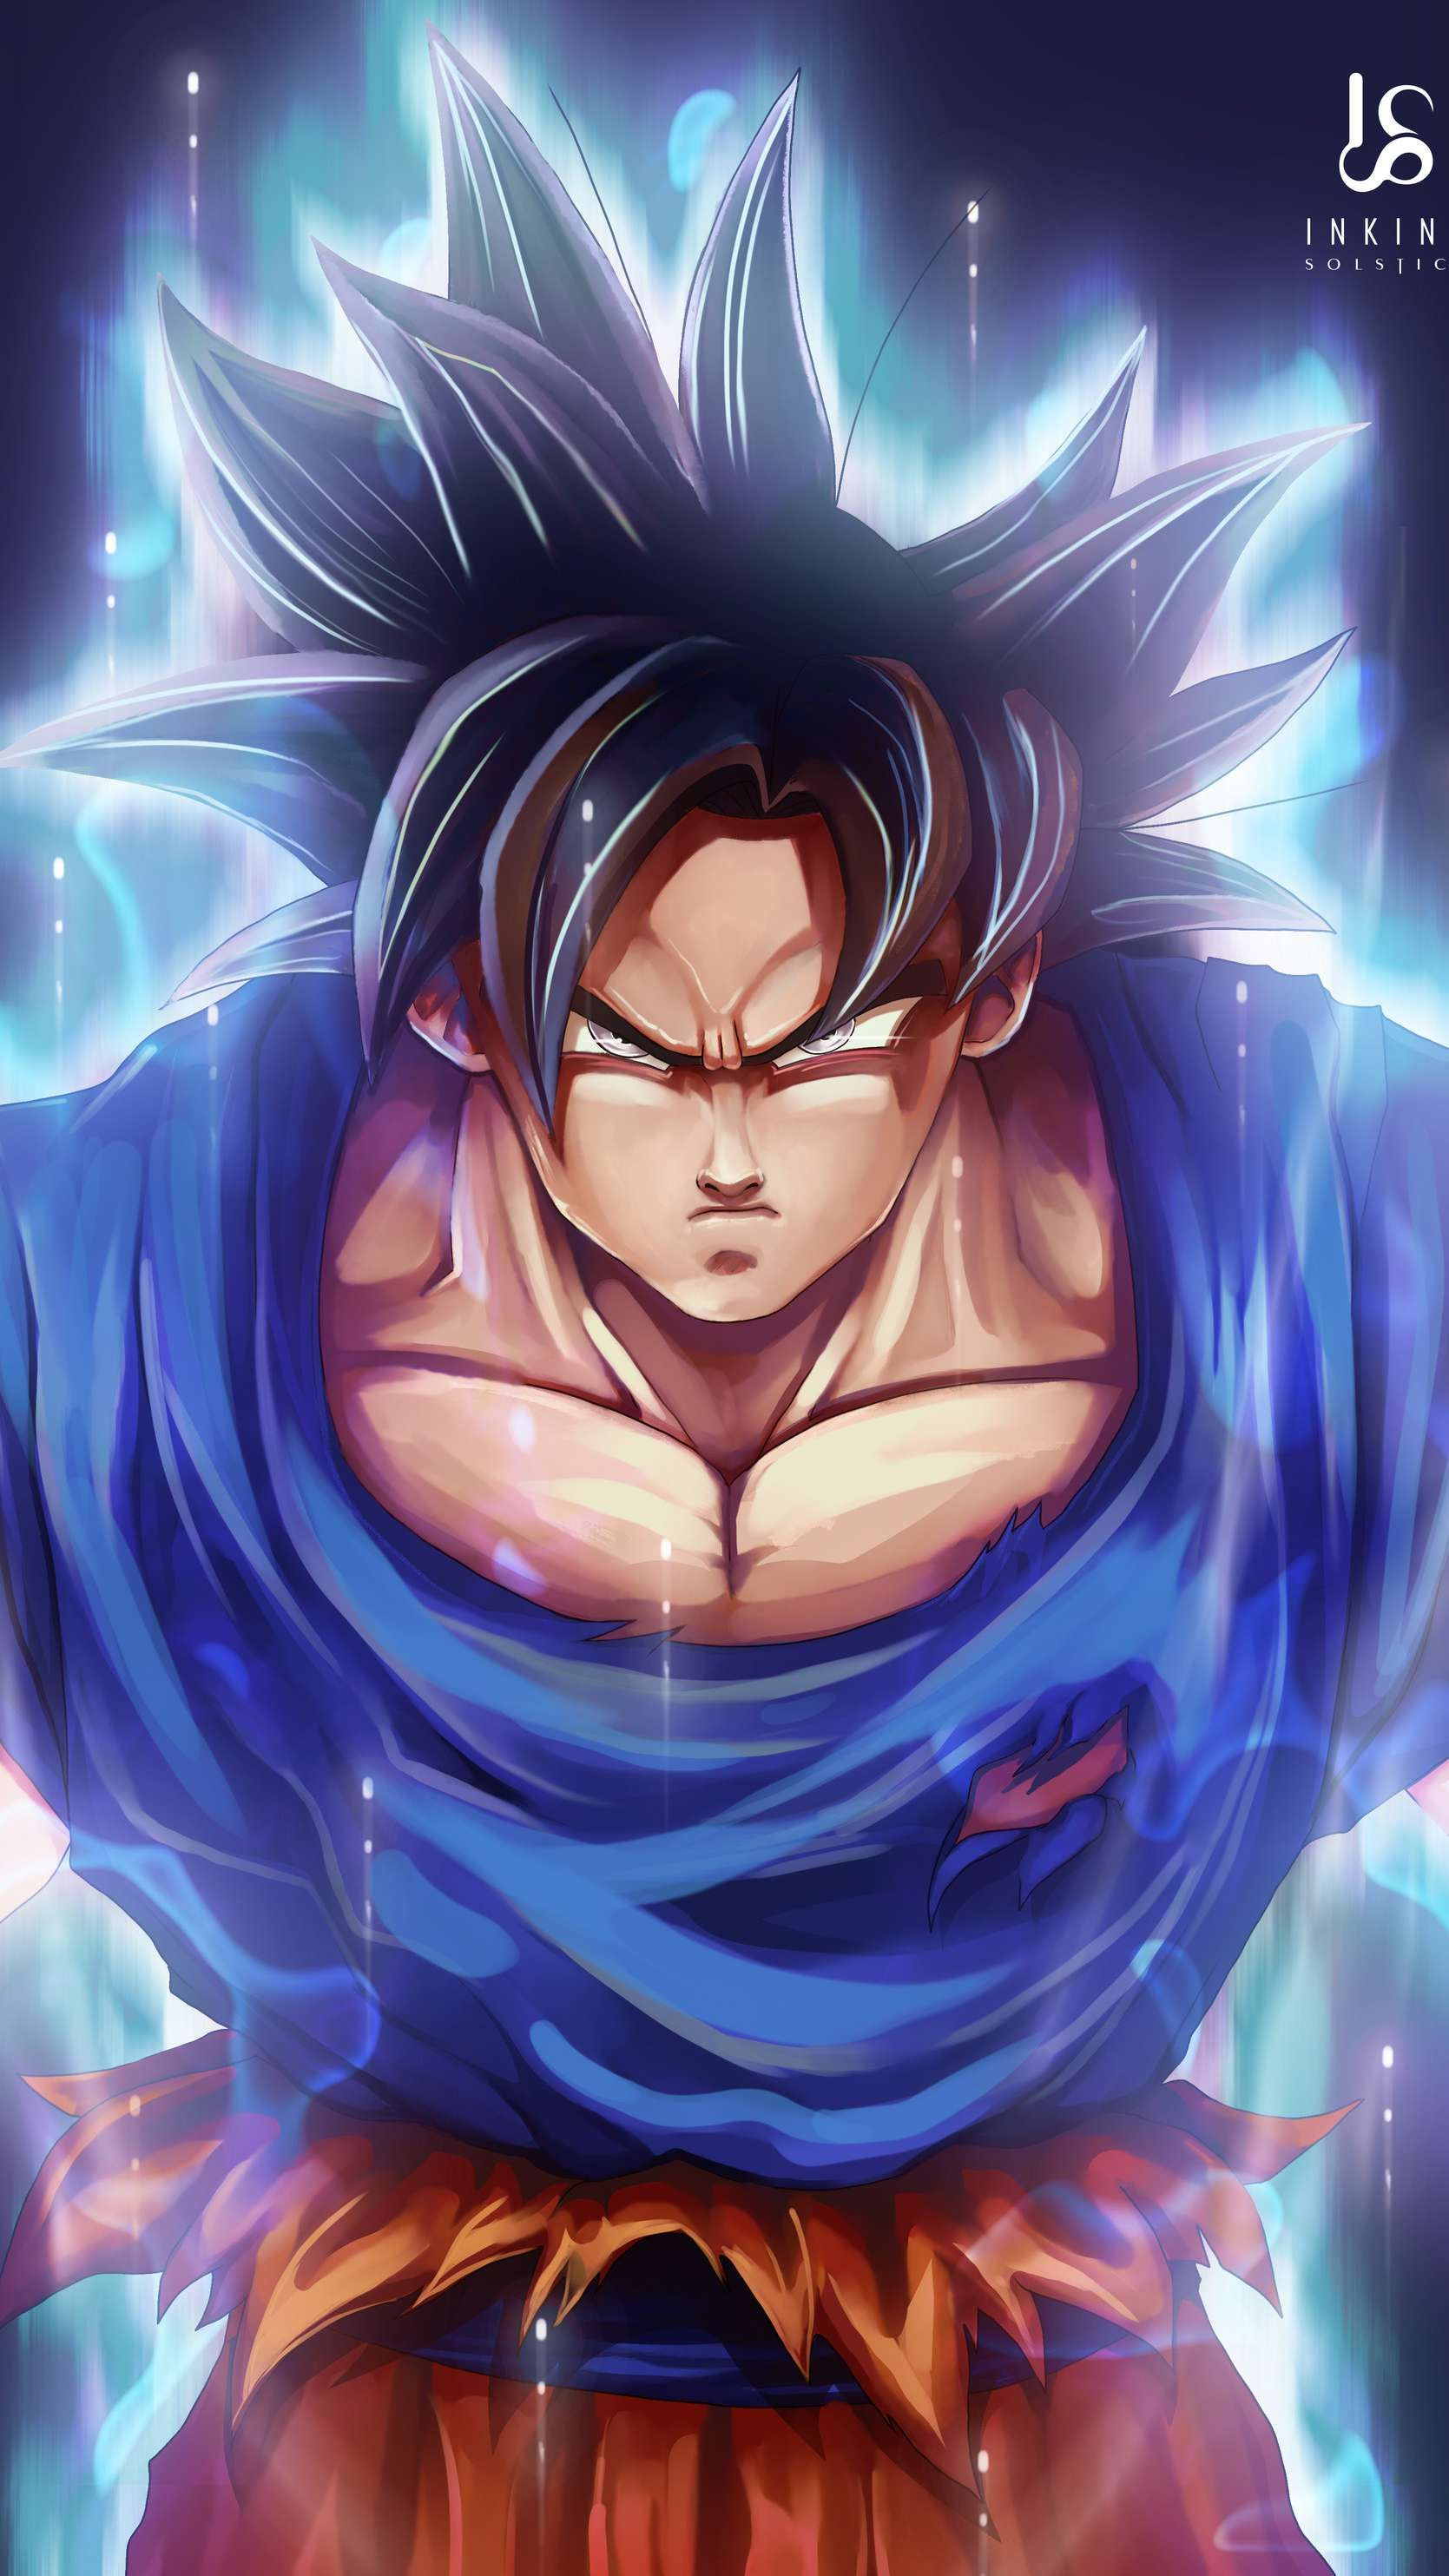 Goku Dragon Ball Z Wallpaper Dragon Ball Wallpapers Goku Wallpaper Dragon Ball Artwork